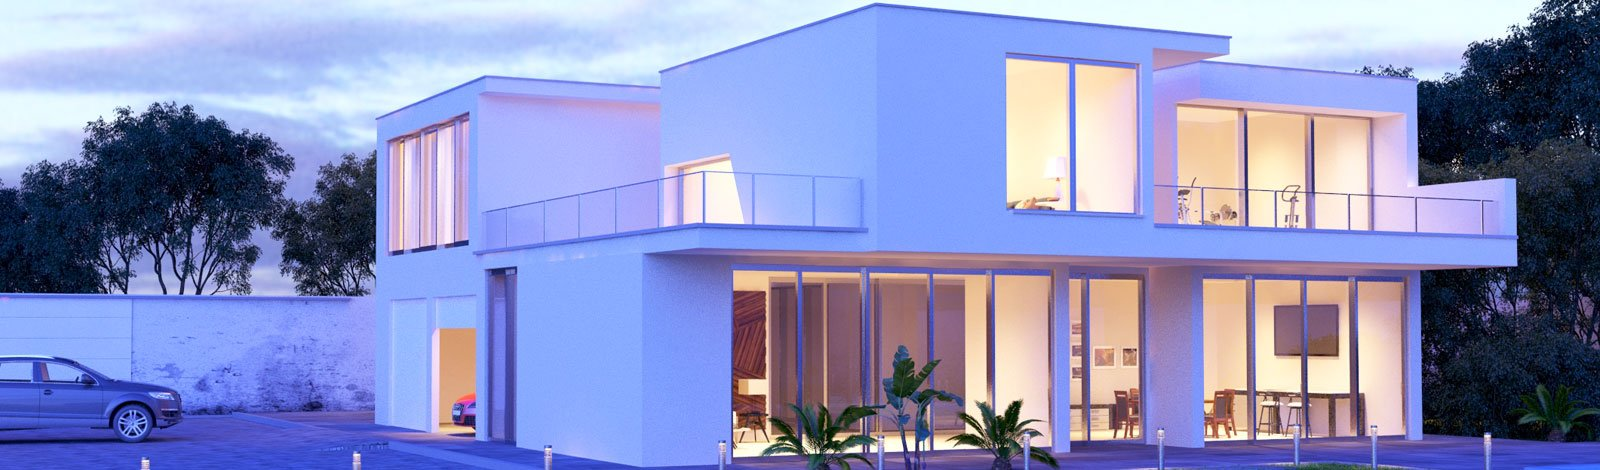 best usa rendering service